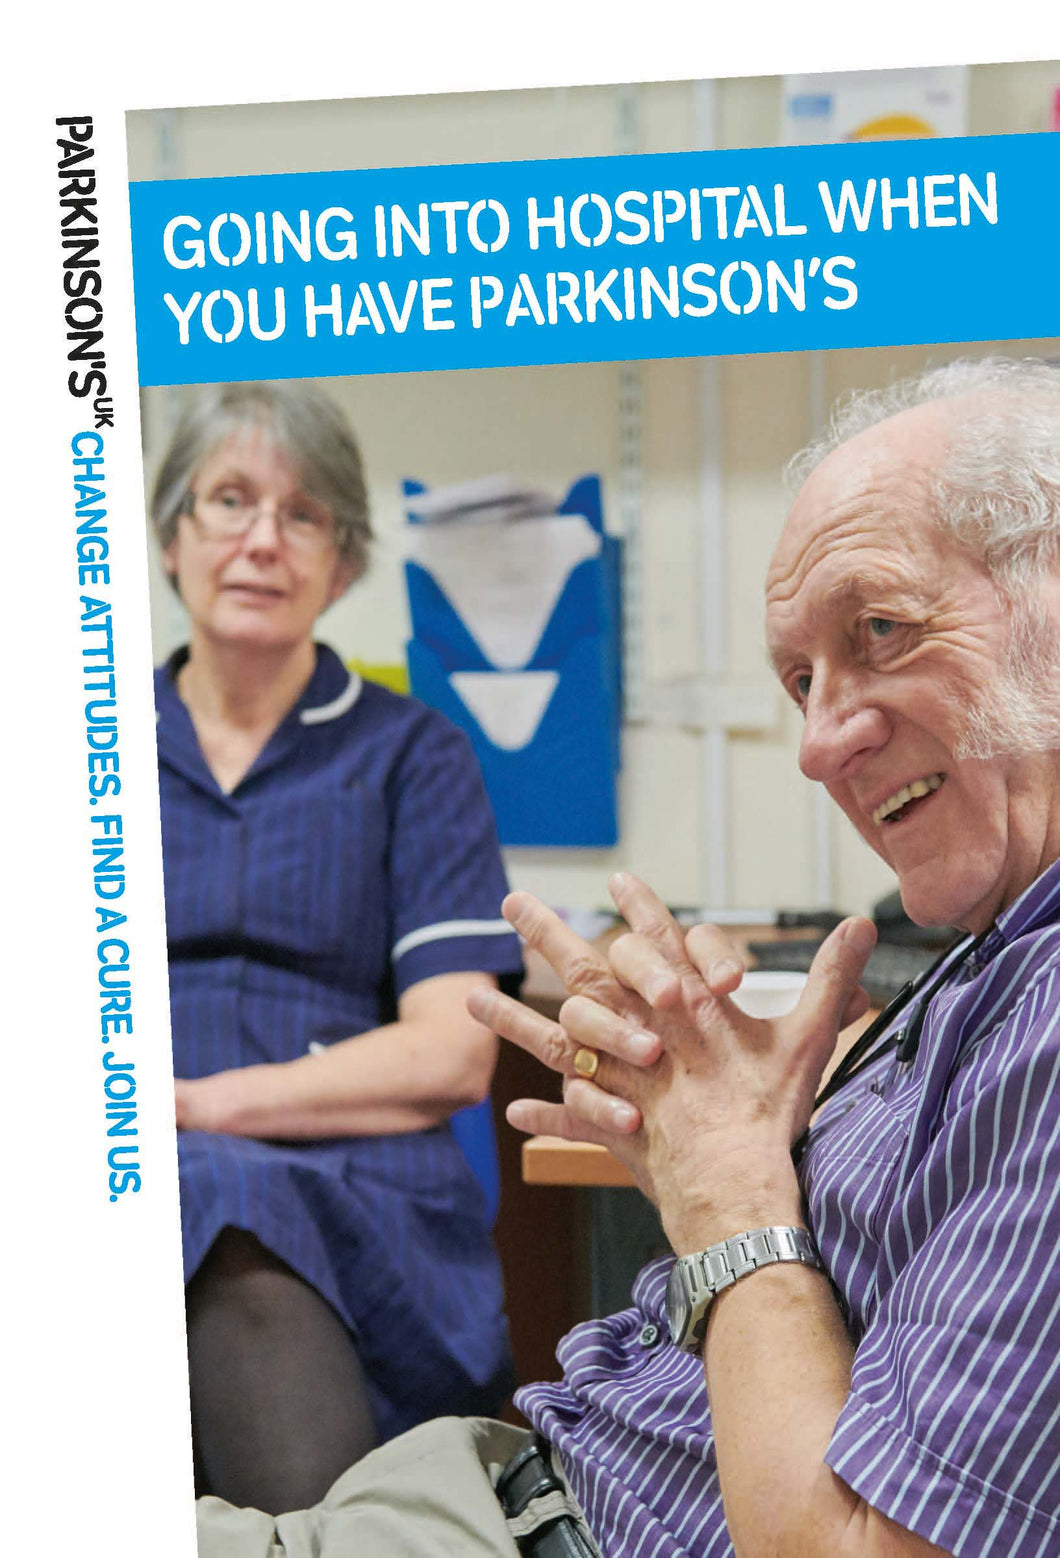 Going into hospital when you have Parkinson's